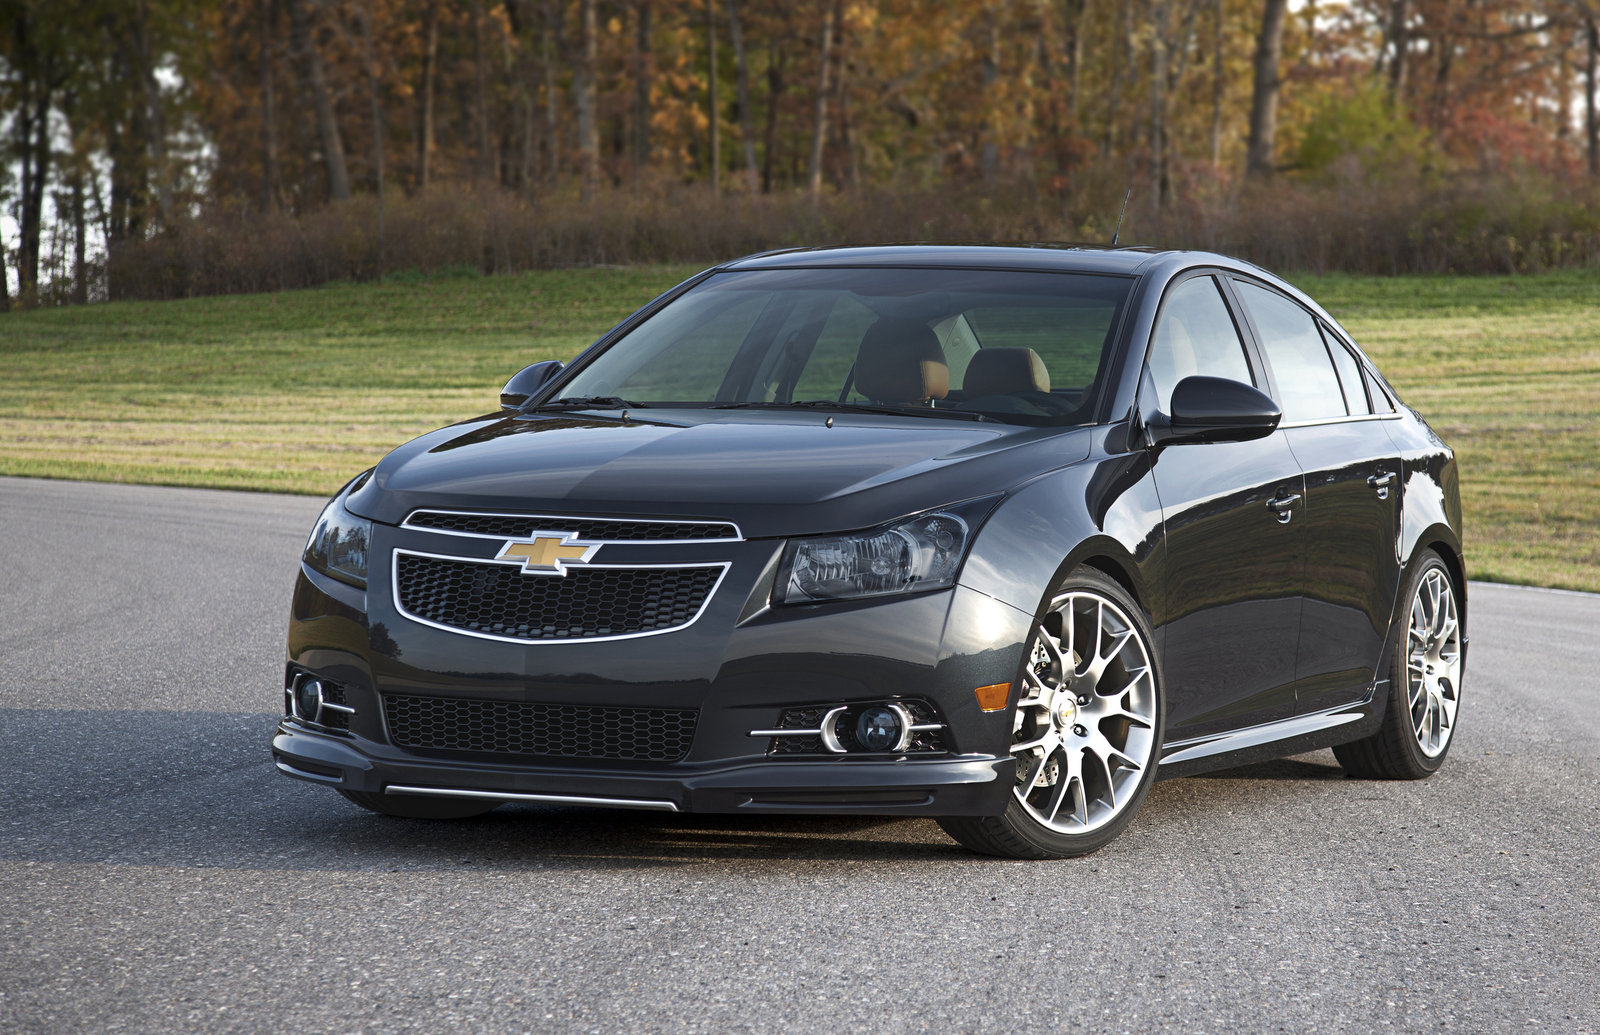 2012 chevrolet cruze dusk review top speed. Black Bedroom Furniture Sets. Home Design Ideas